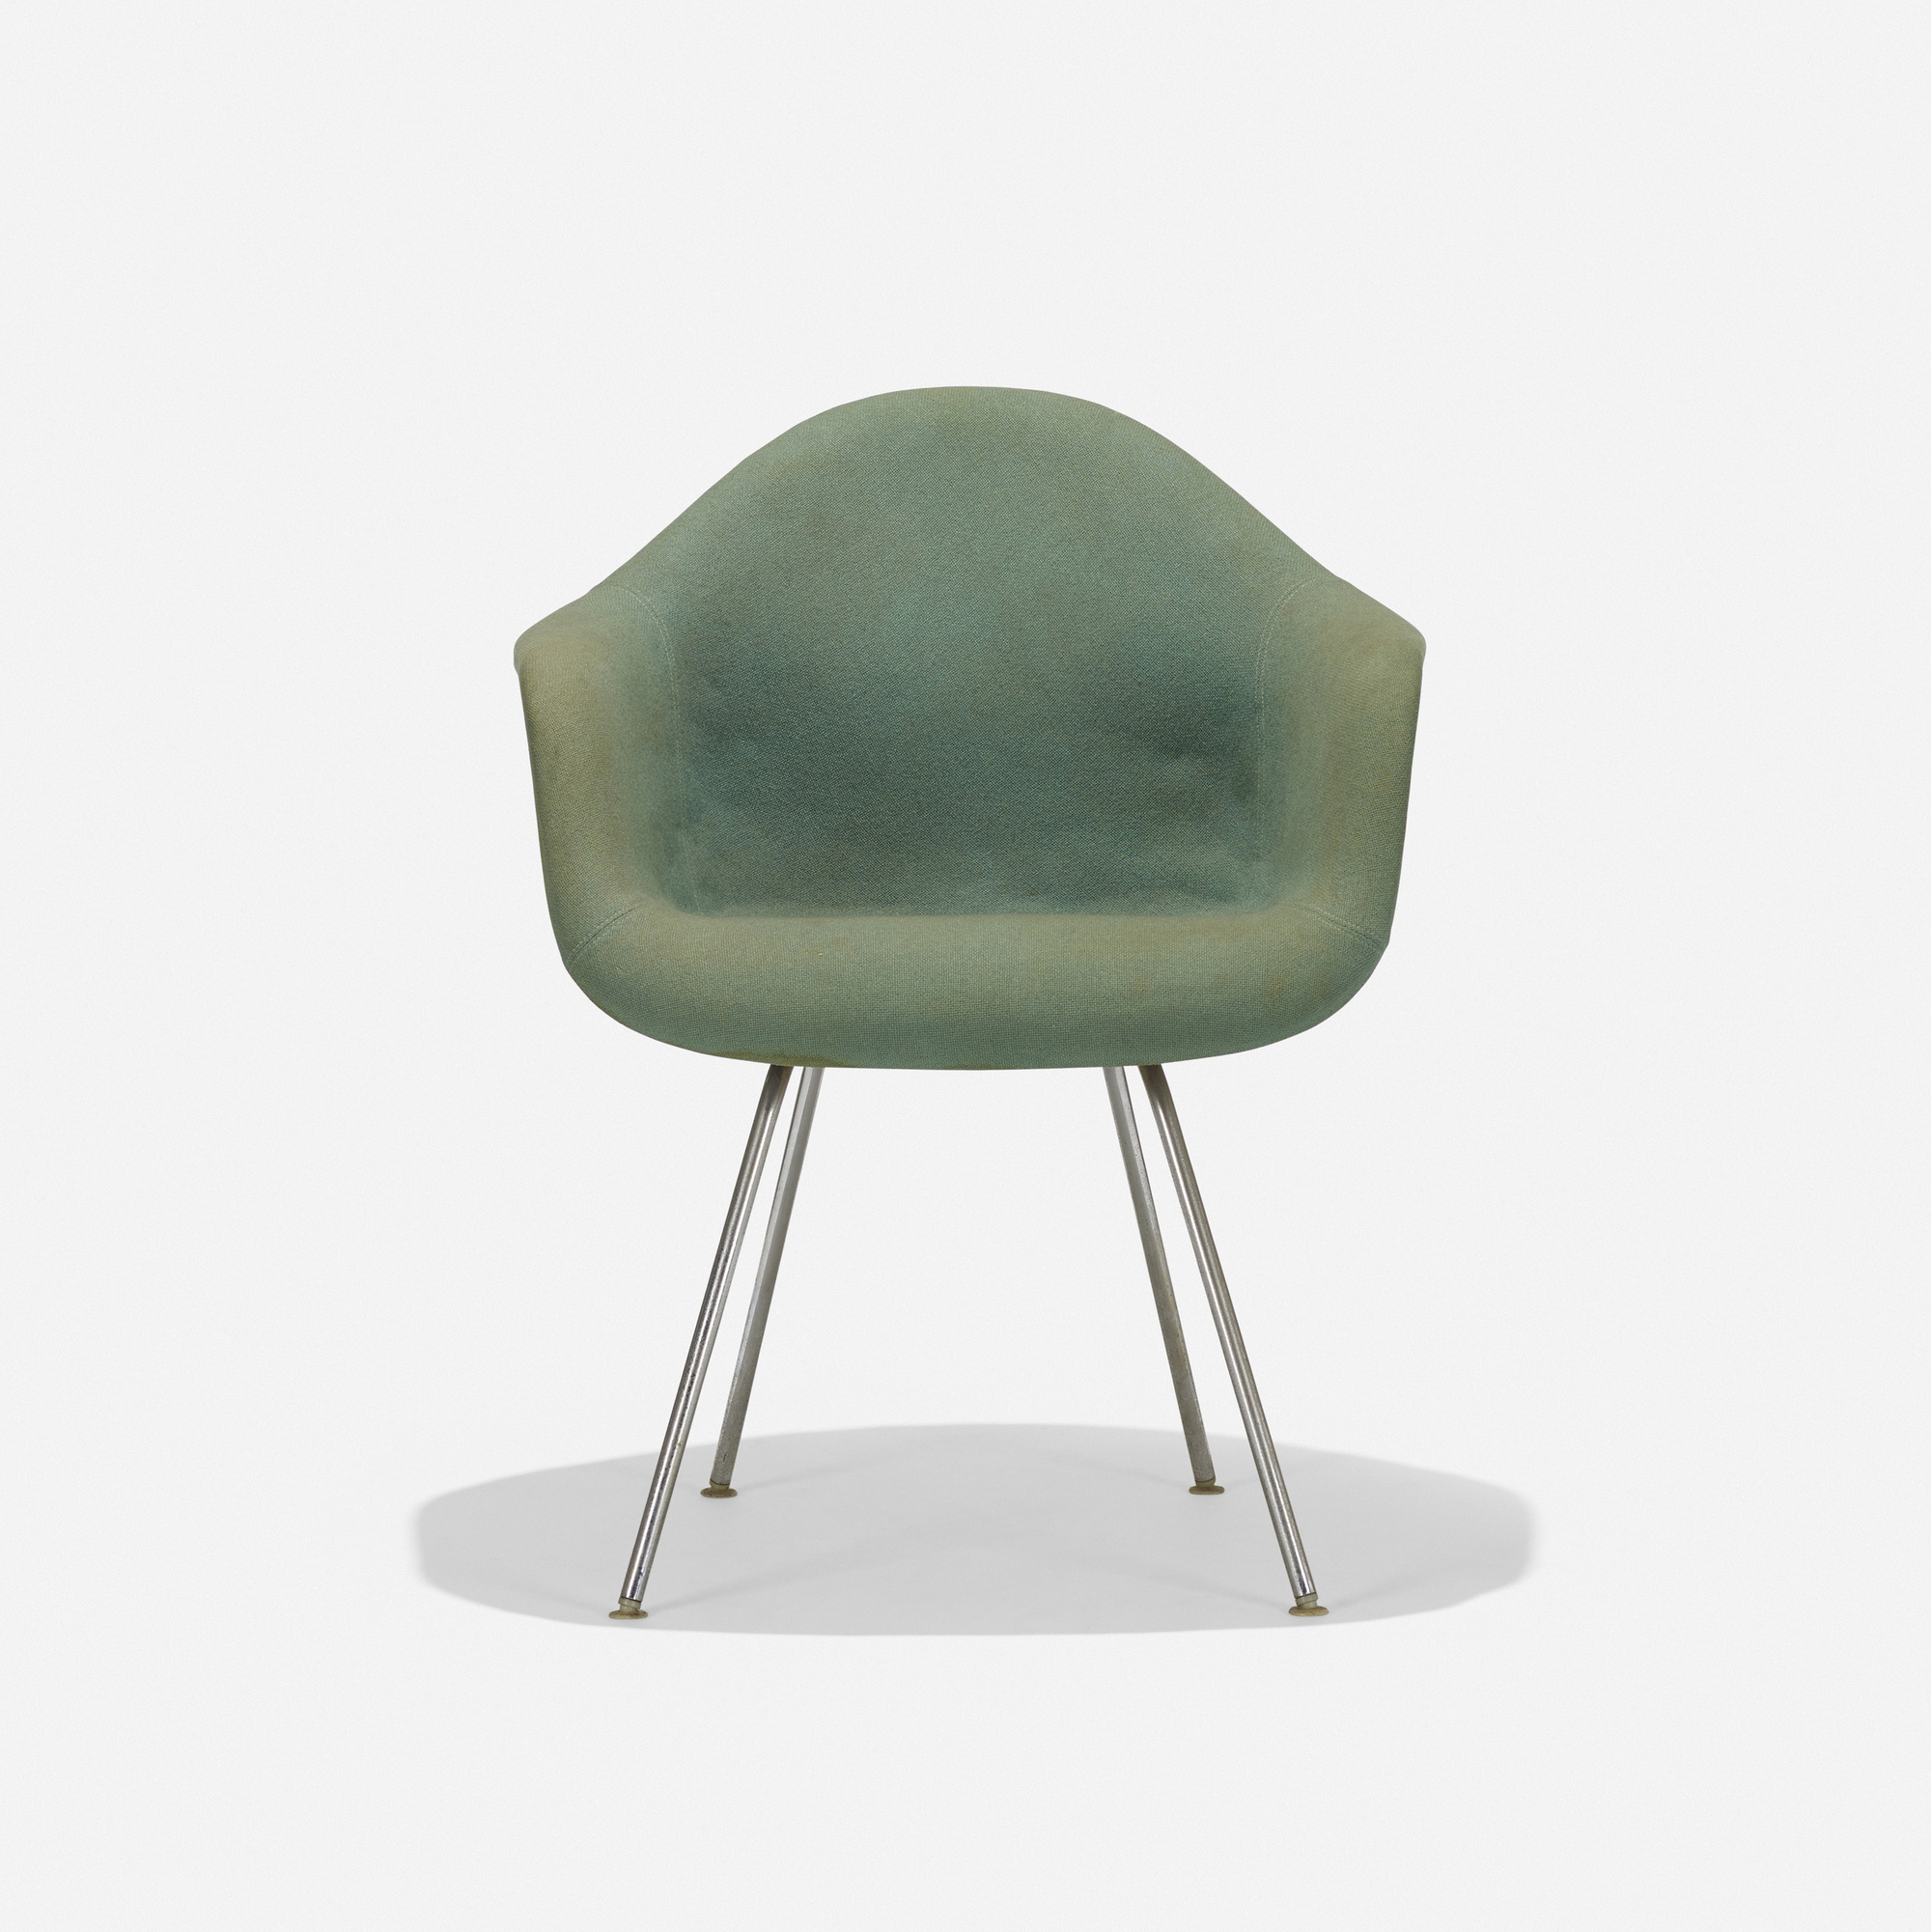 105: Charles and Ray Eames / DAX-1 (2 of 3)